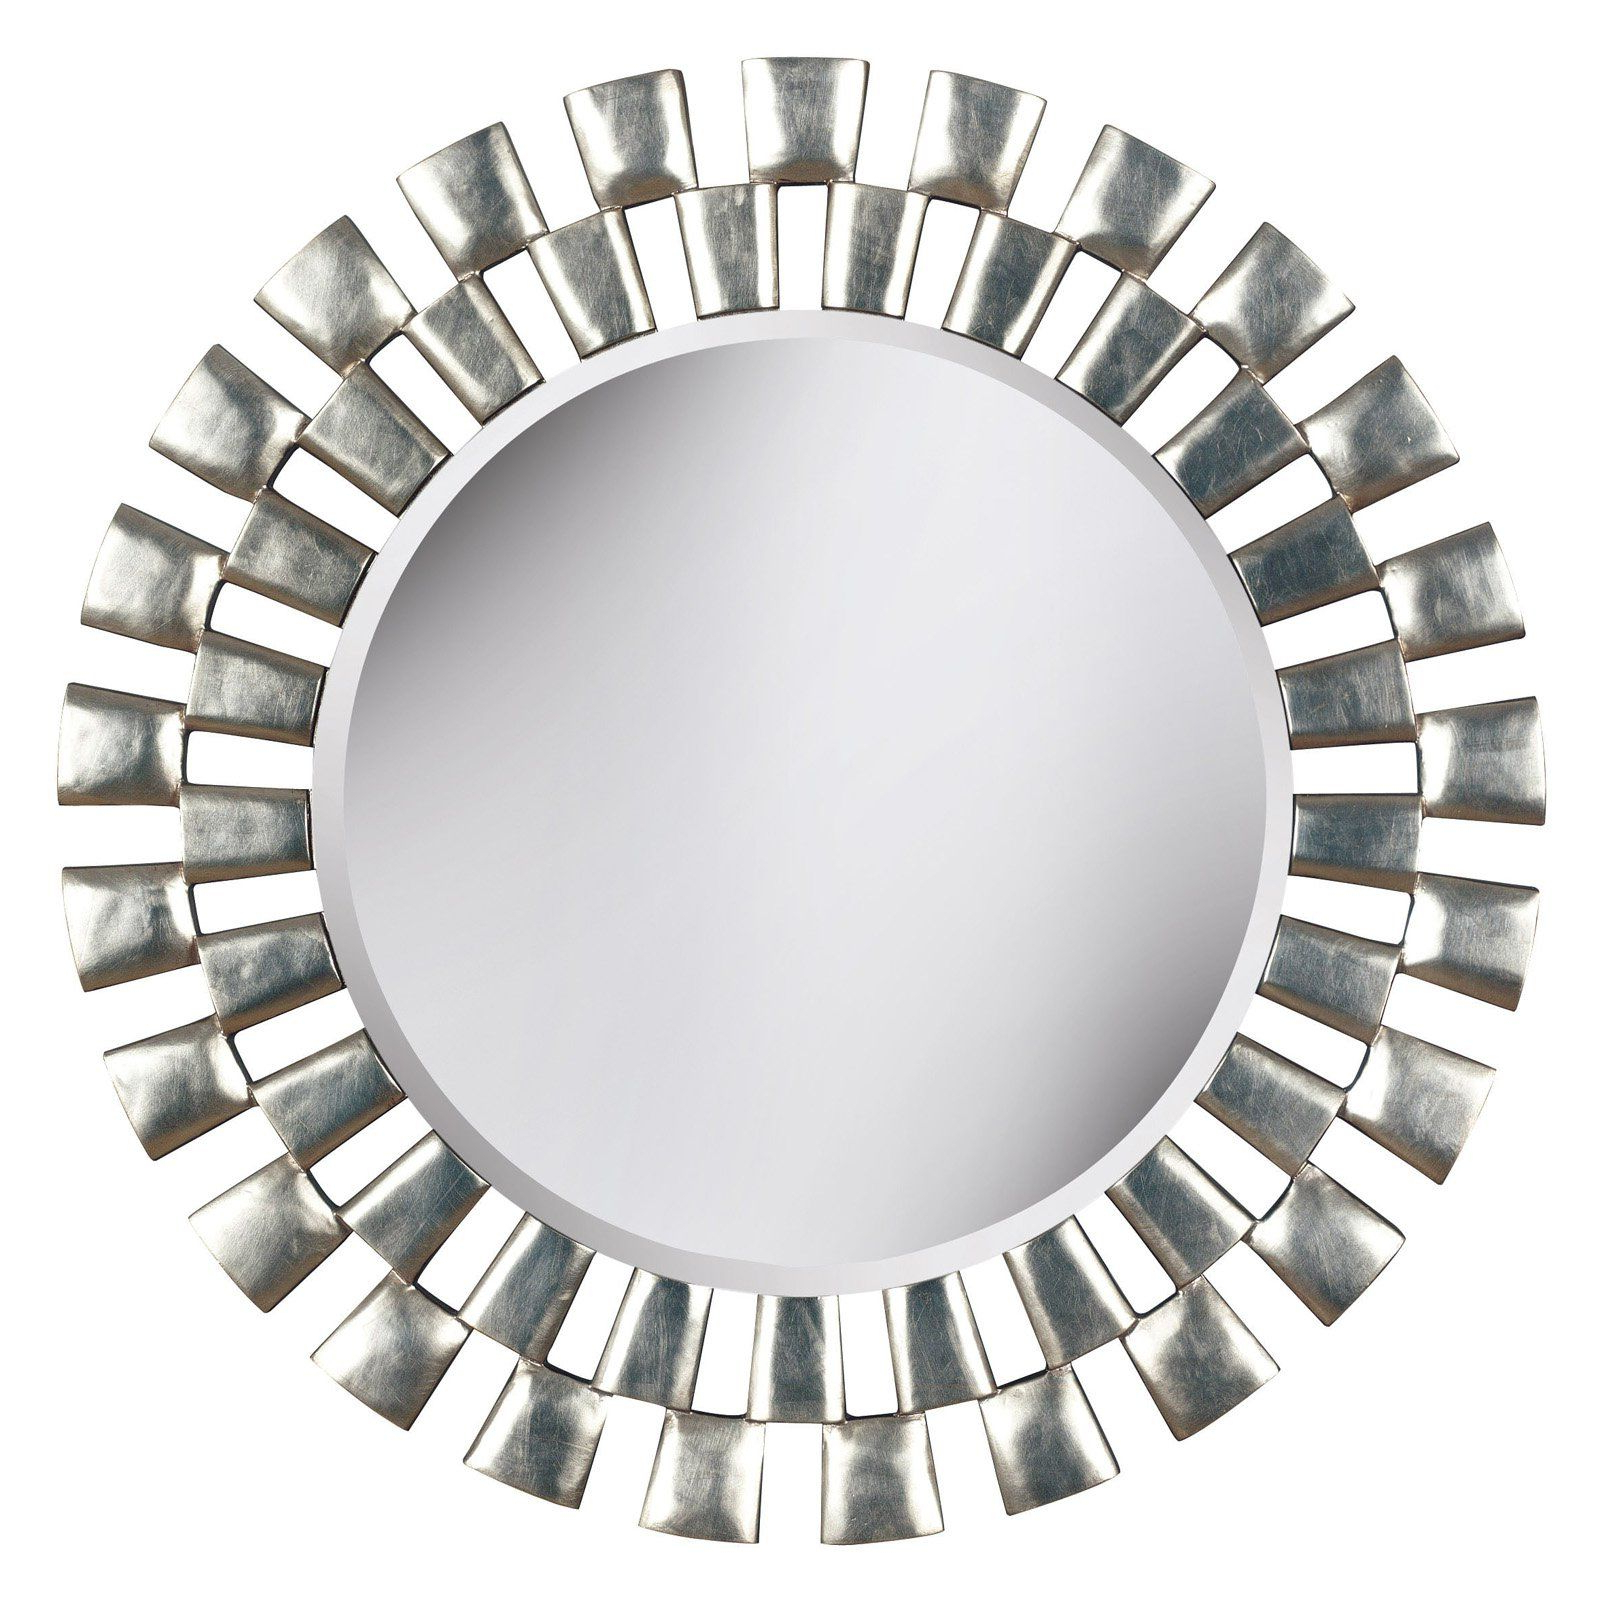 Gilbert Wall Mirrors Pertaining To Current Gilbert Wall Mirror – 24 Diam. In (View 2 of 20)